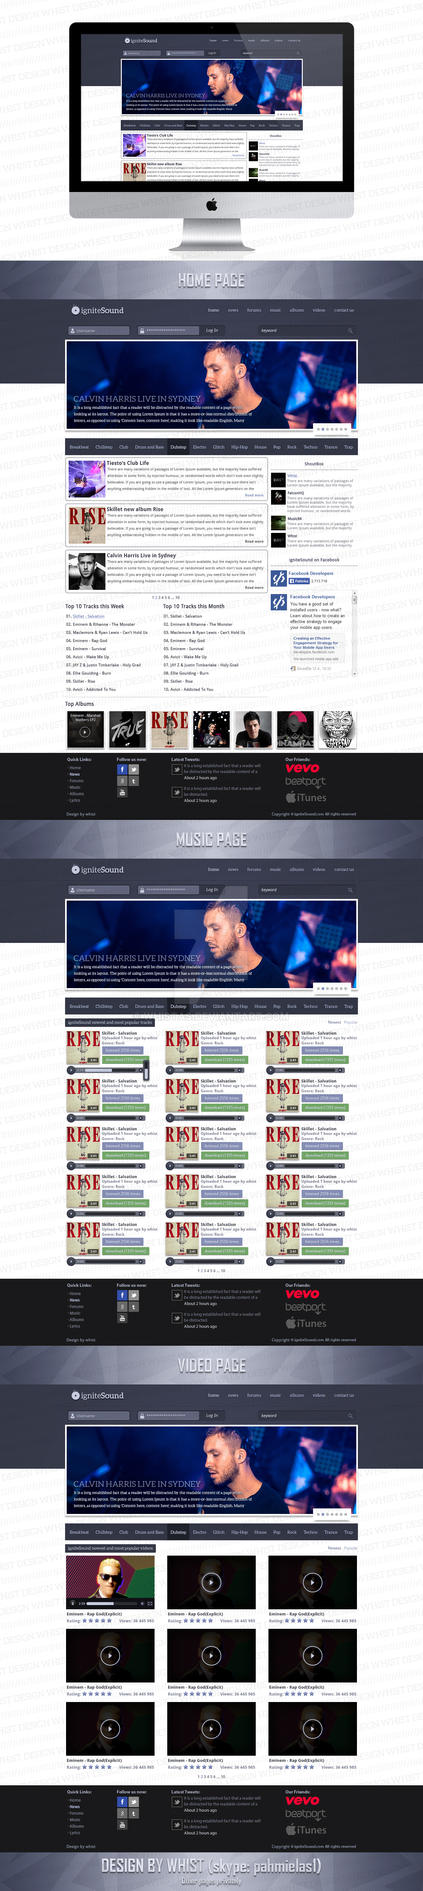 igniteSound web design by Whistas